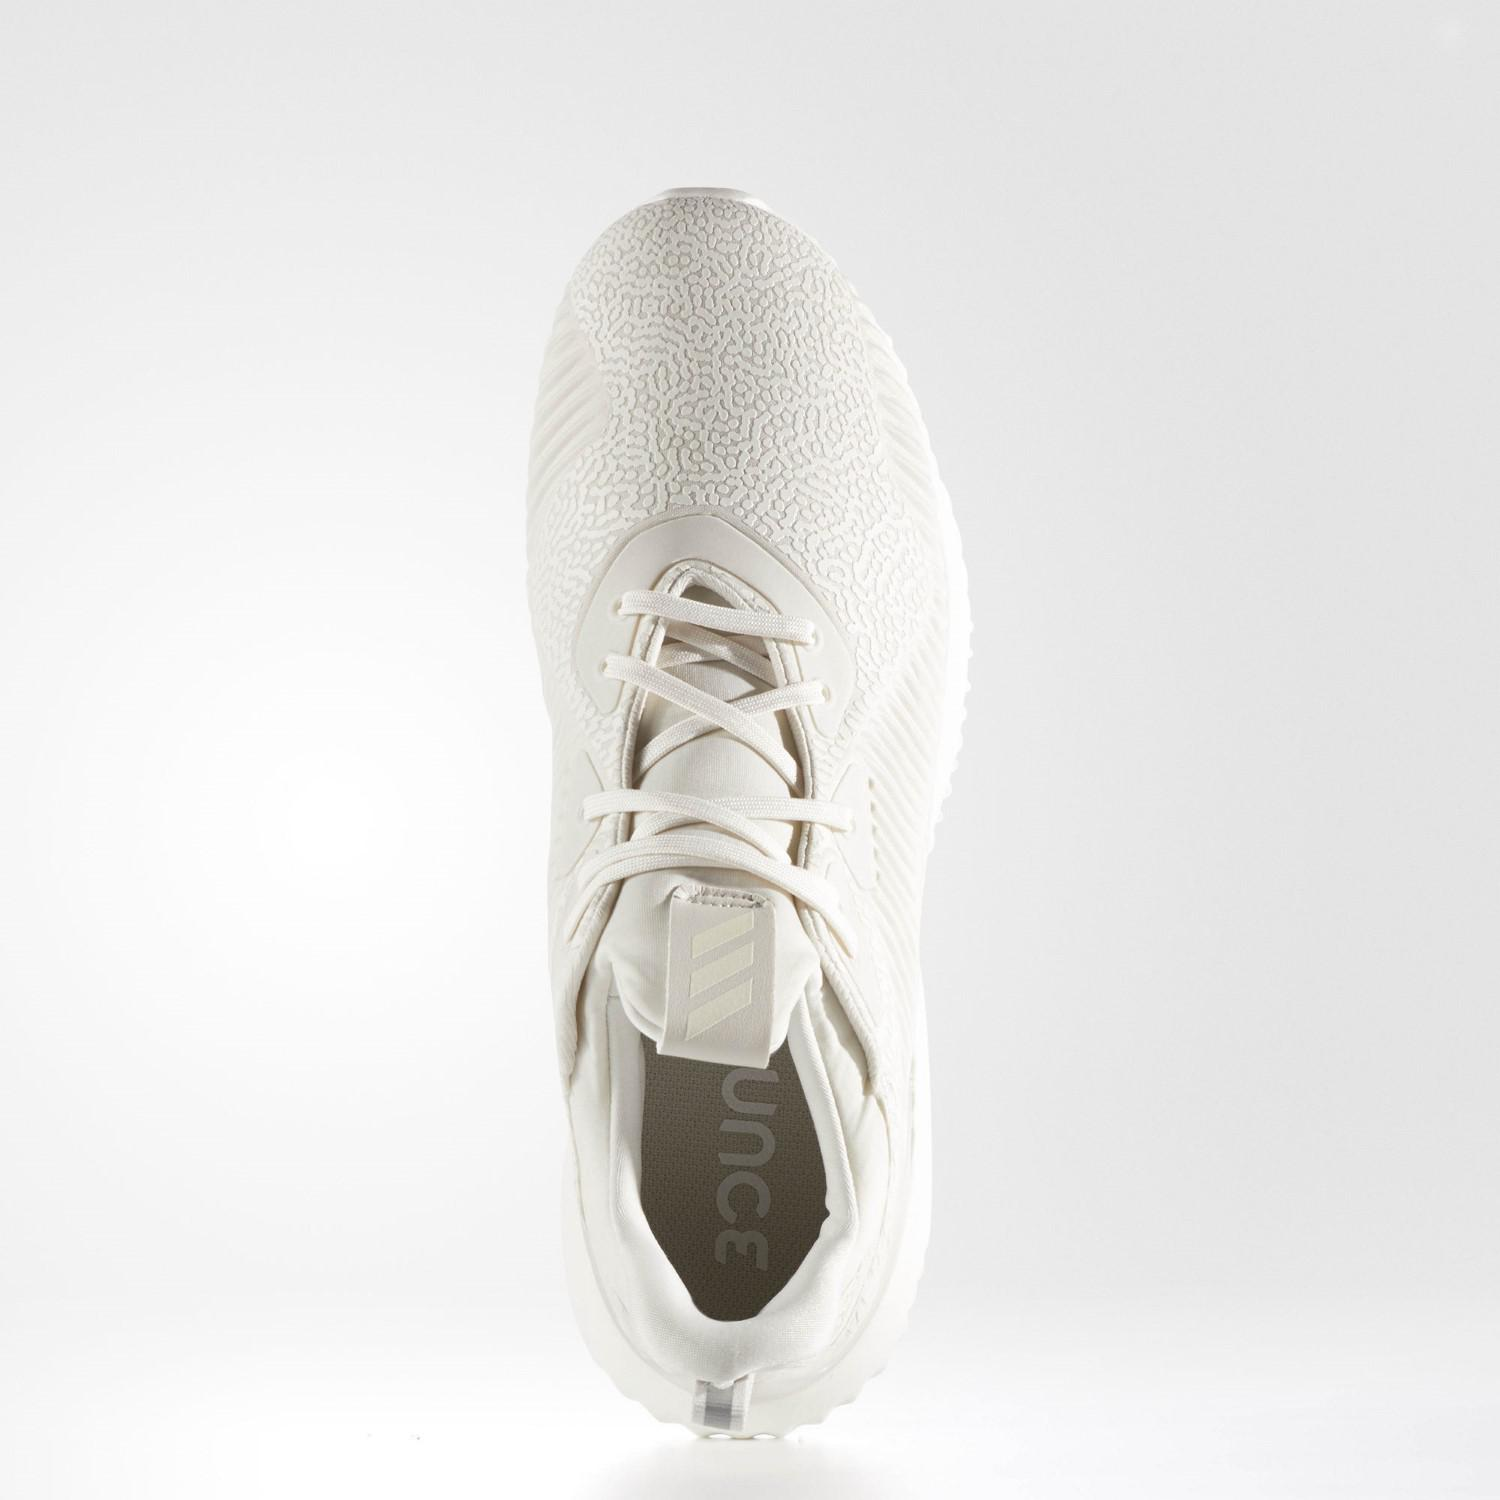 online retailer cf4df 879b6 Lyst - Adidas Alphabounce Reflective Hpc Ams Shoes in White